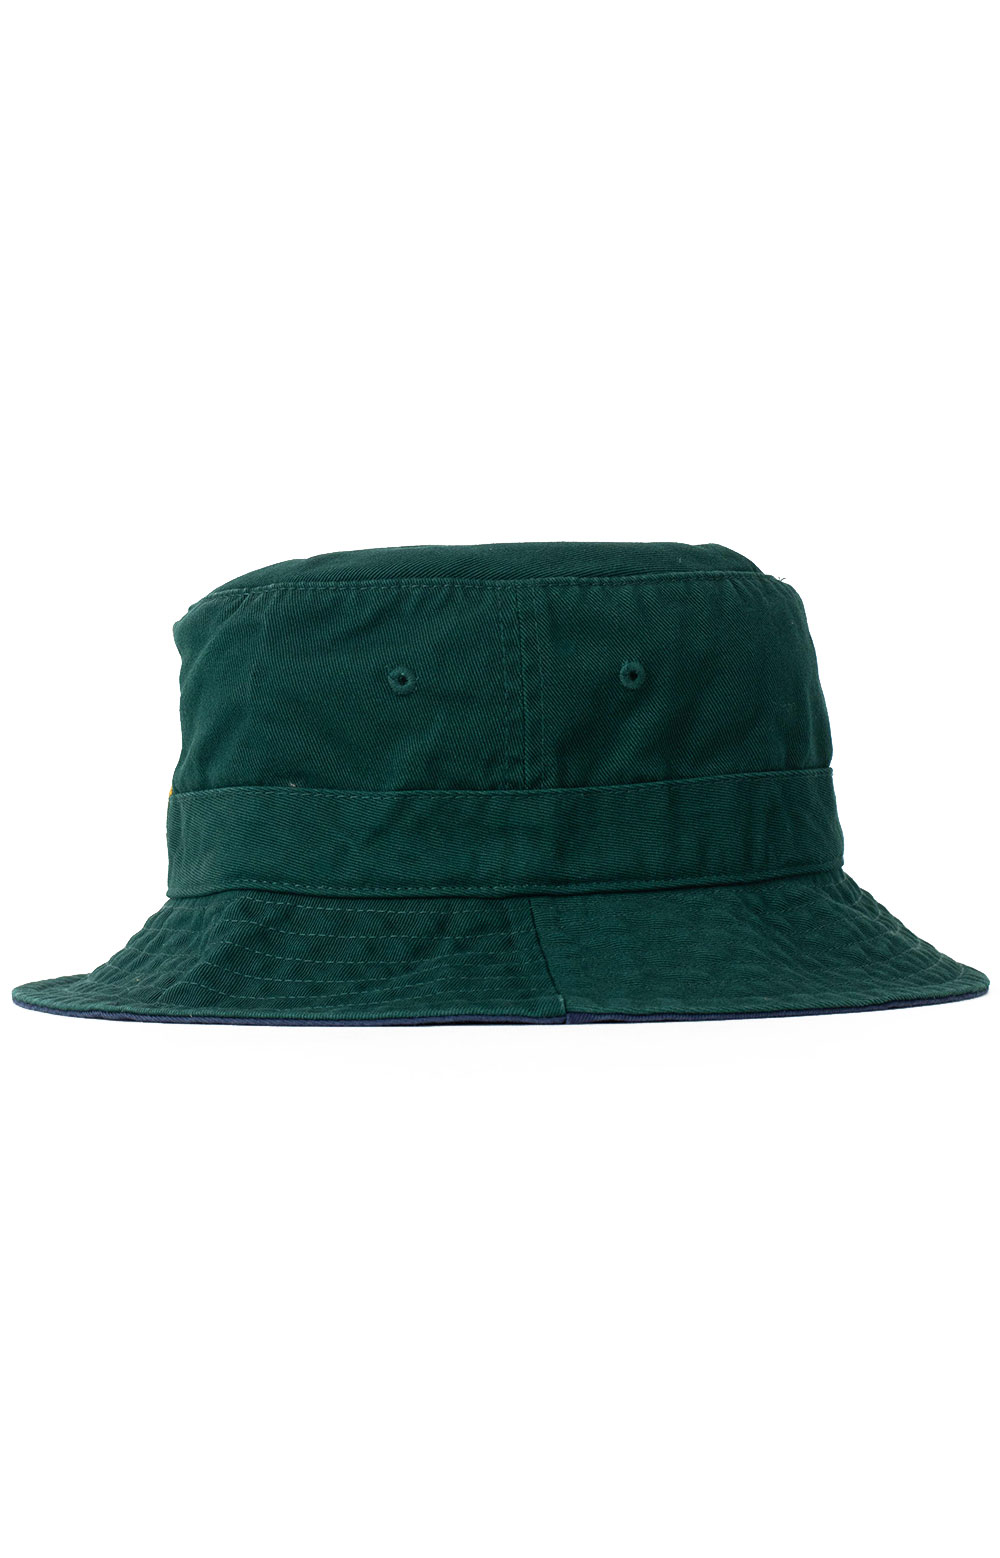 Polo Best Bear Chino Bucket Hat - College Green  3